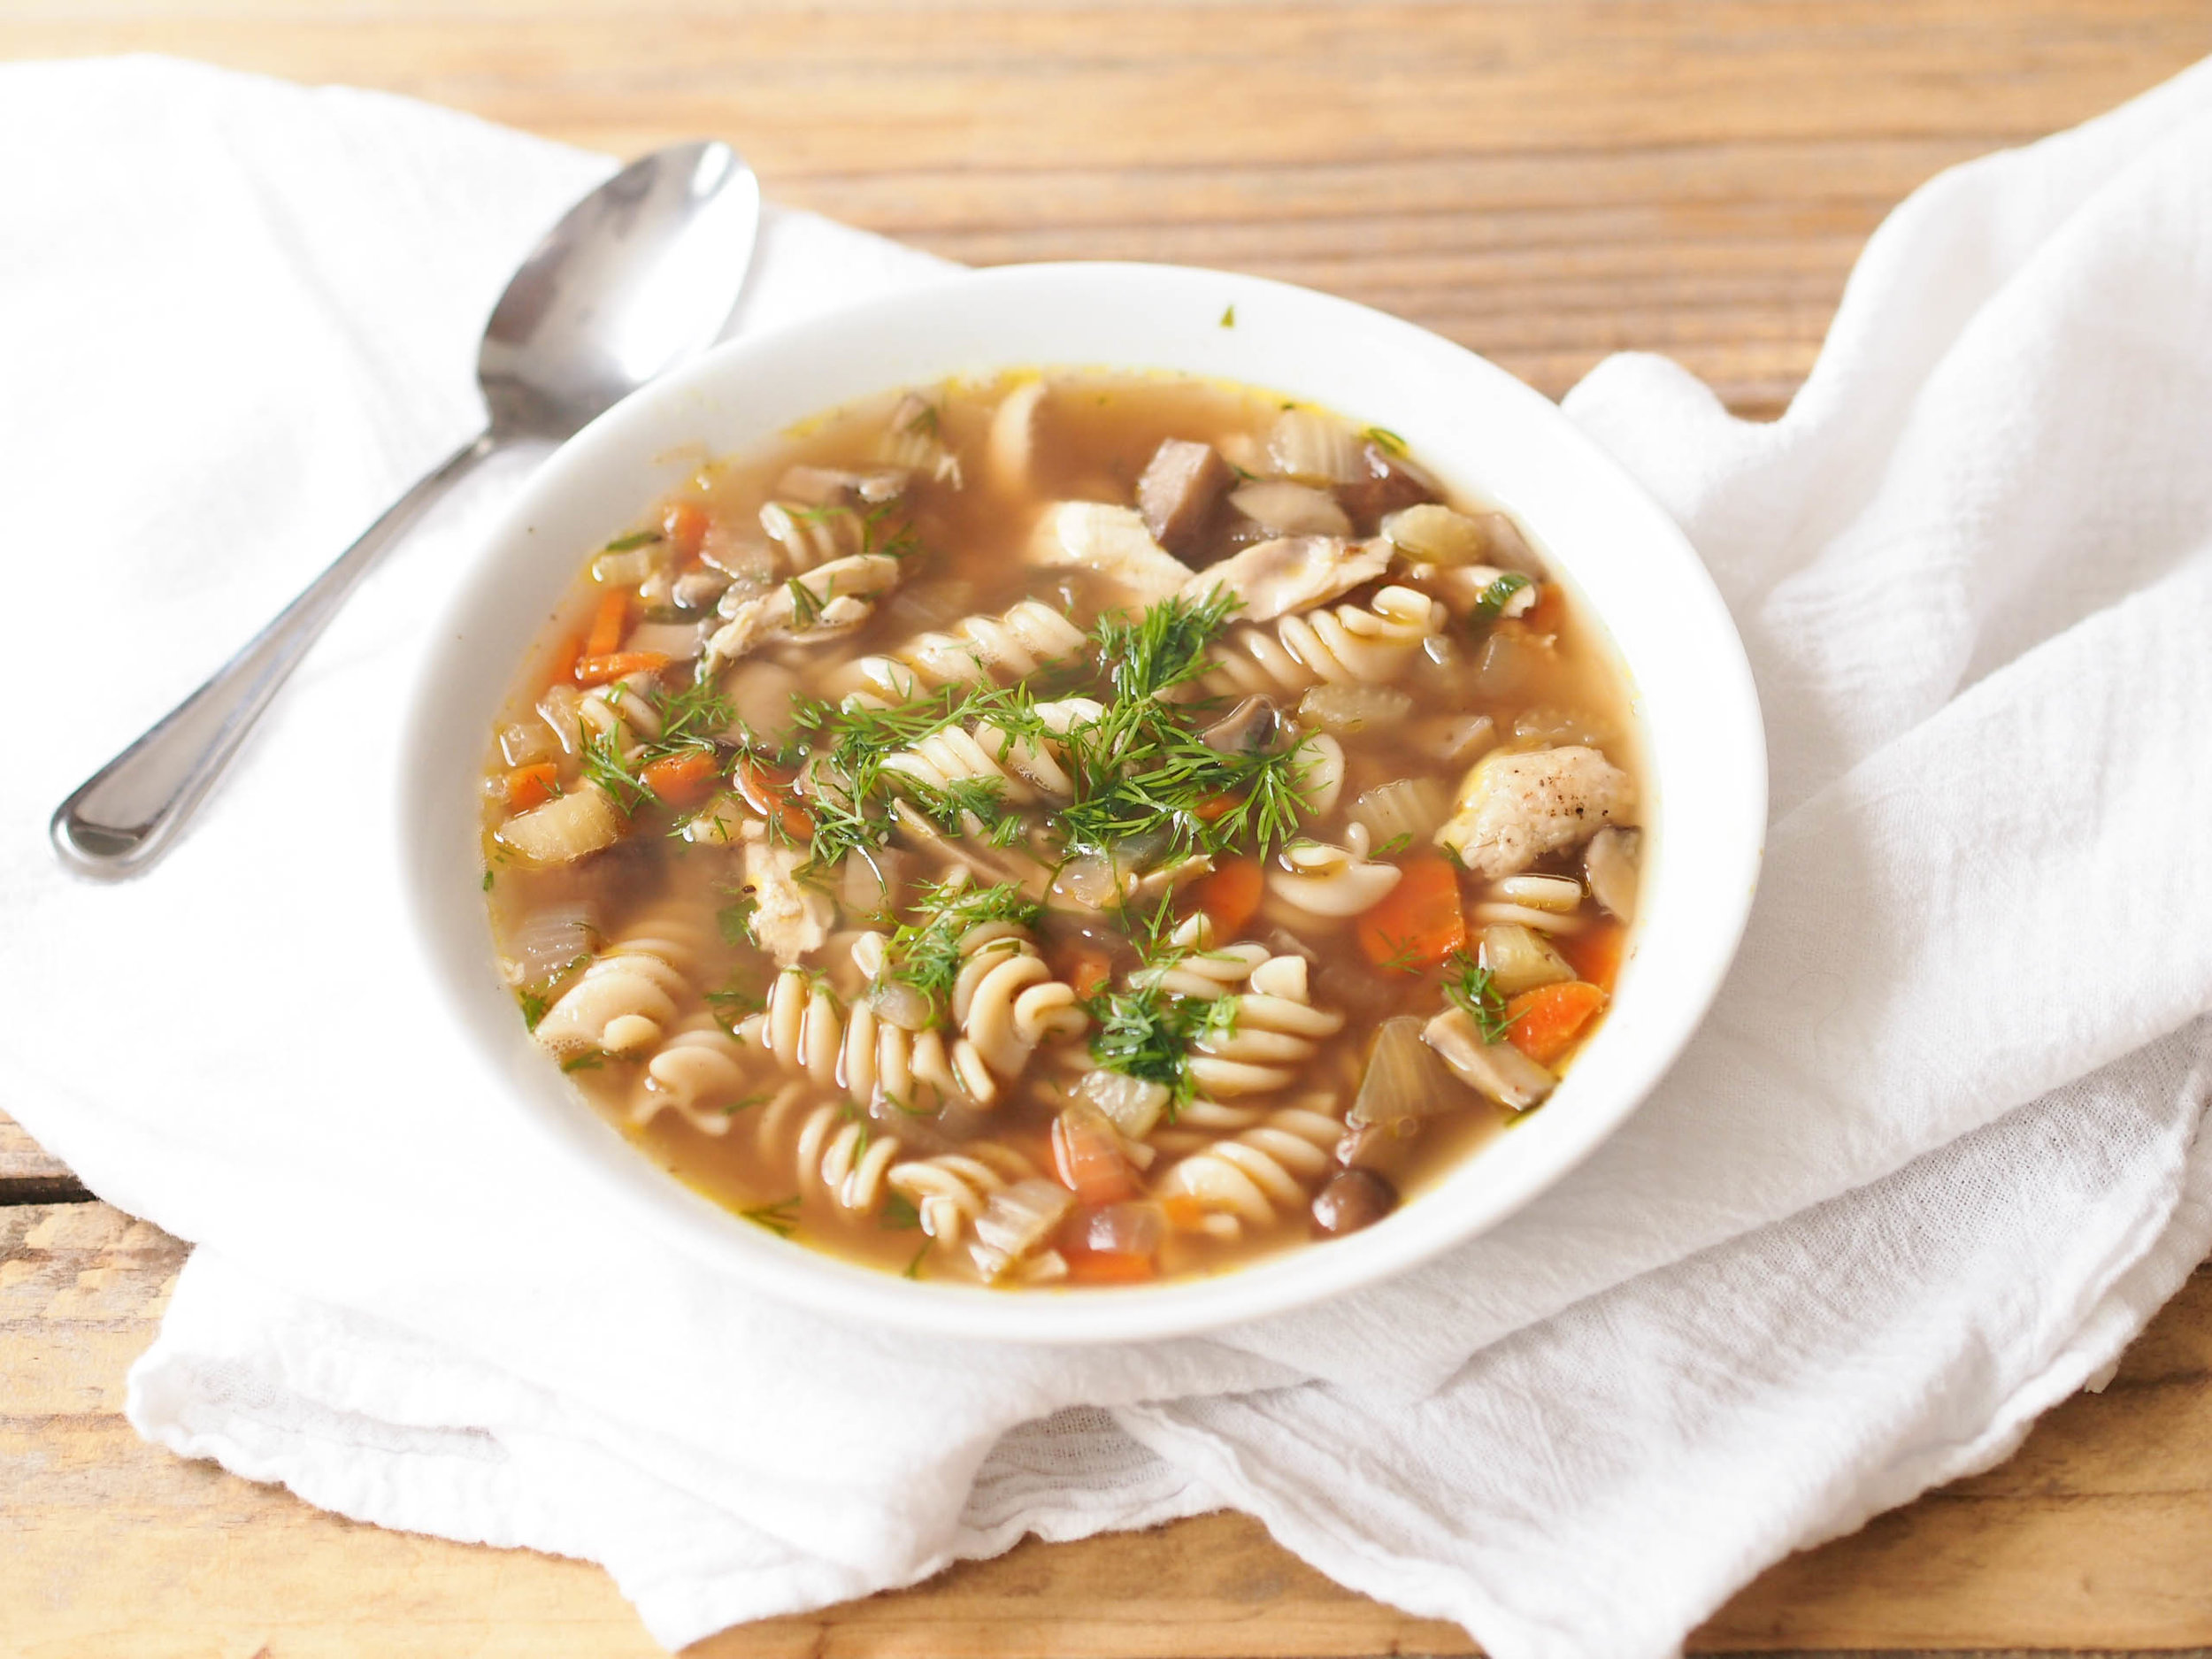 Leftover turkey noodle soup with the best ever broth! The secret is roasting the bones to coax out more flavor.